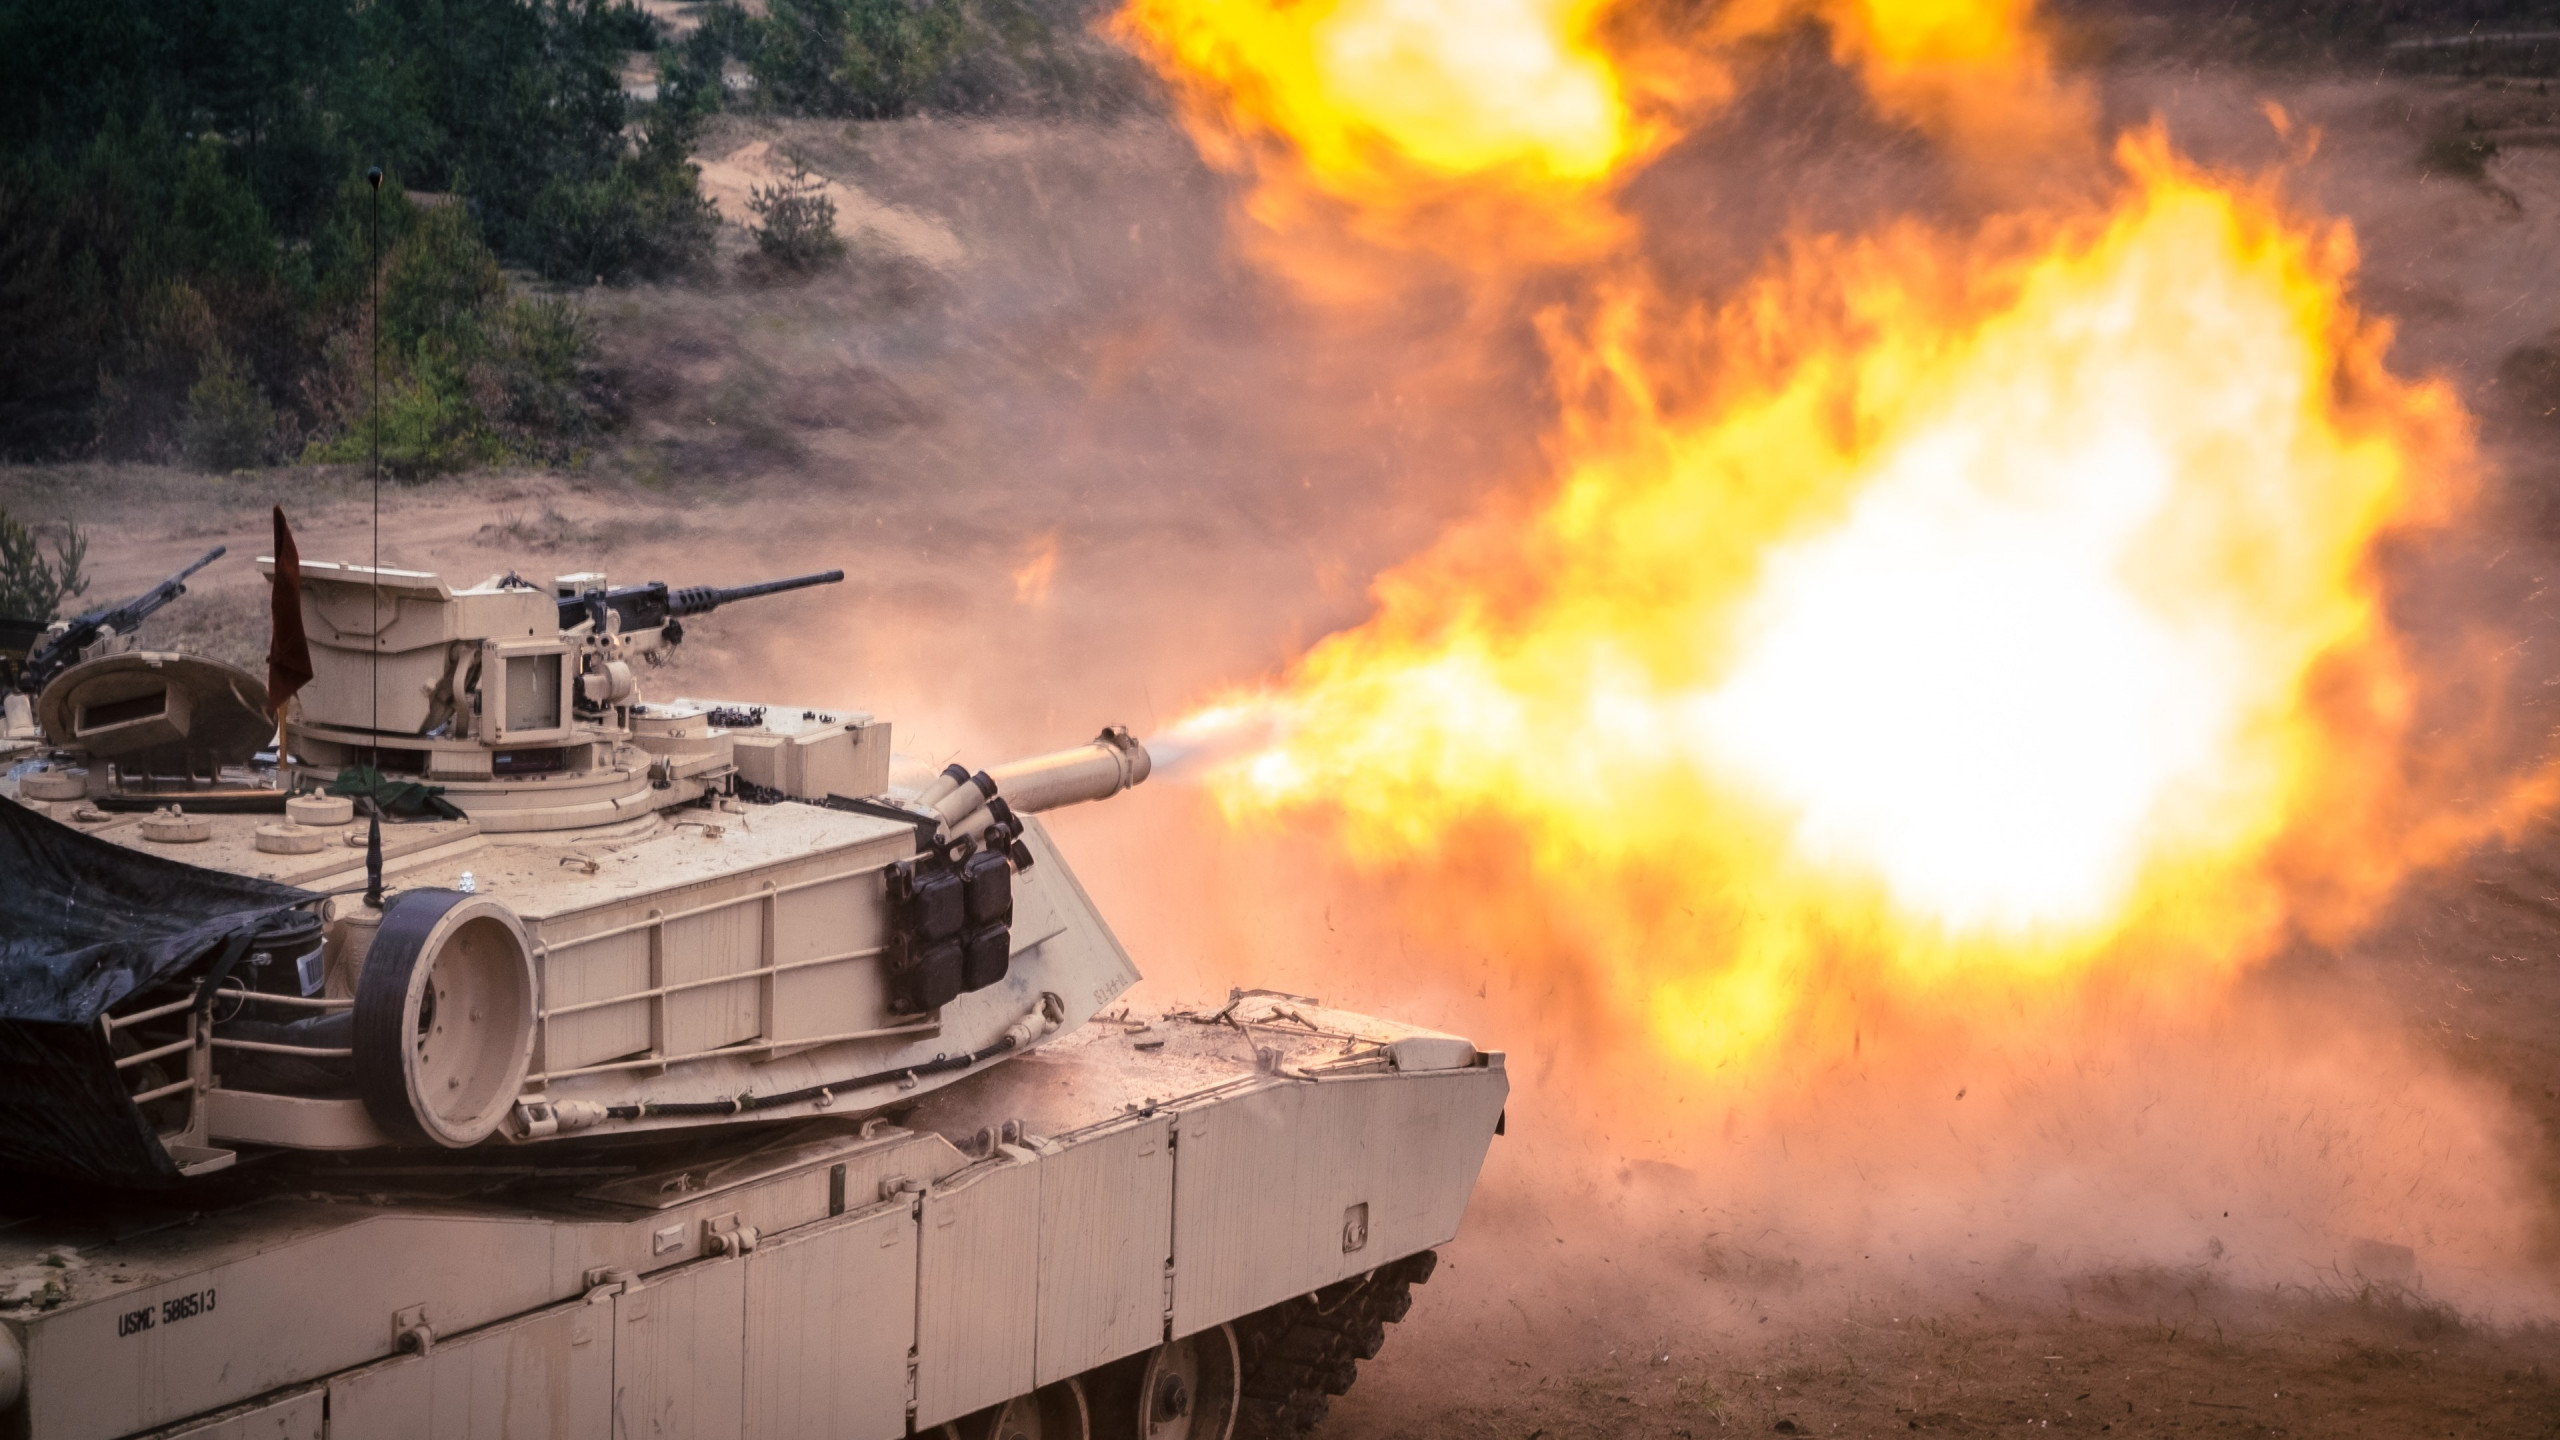 Tank firing exercise | 2560x1440 wallpaper